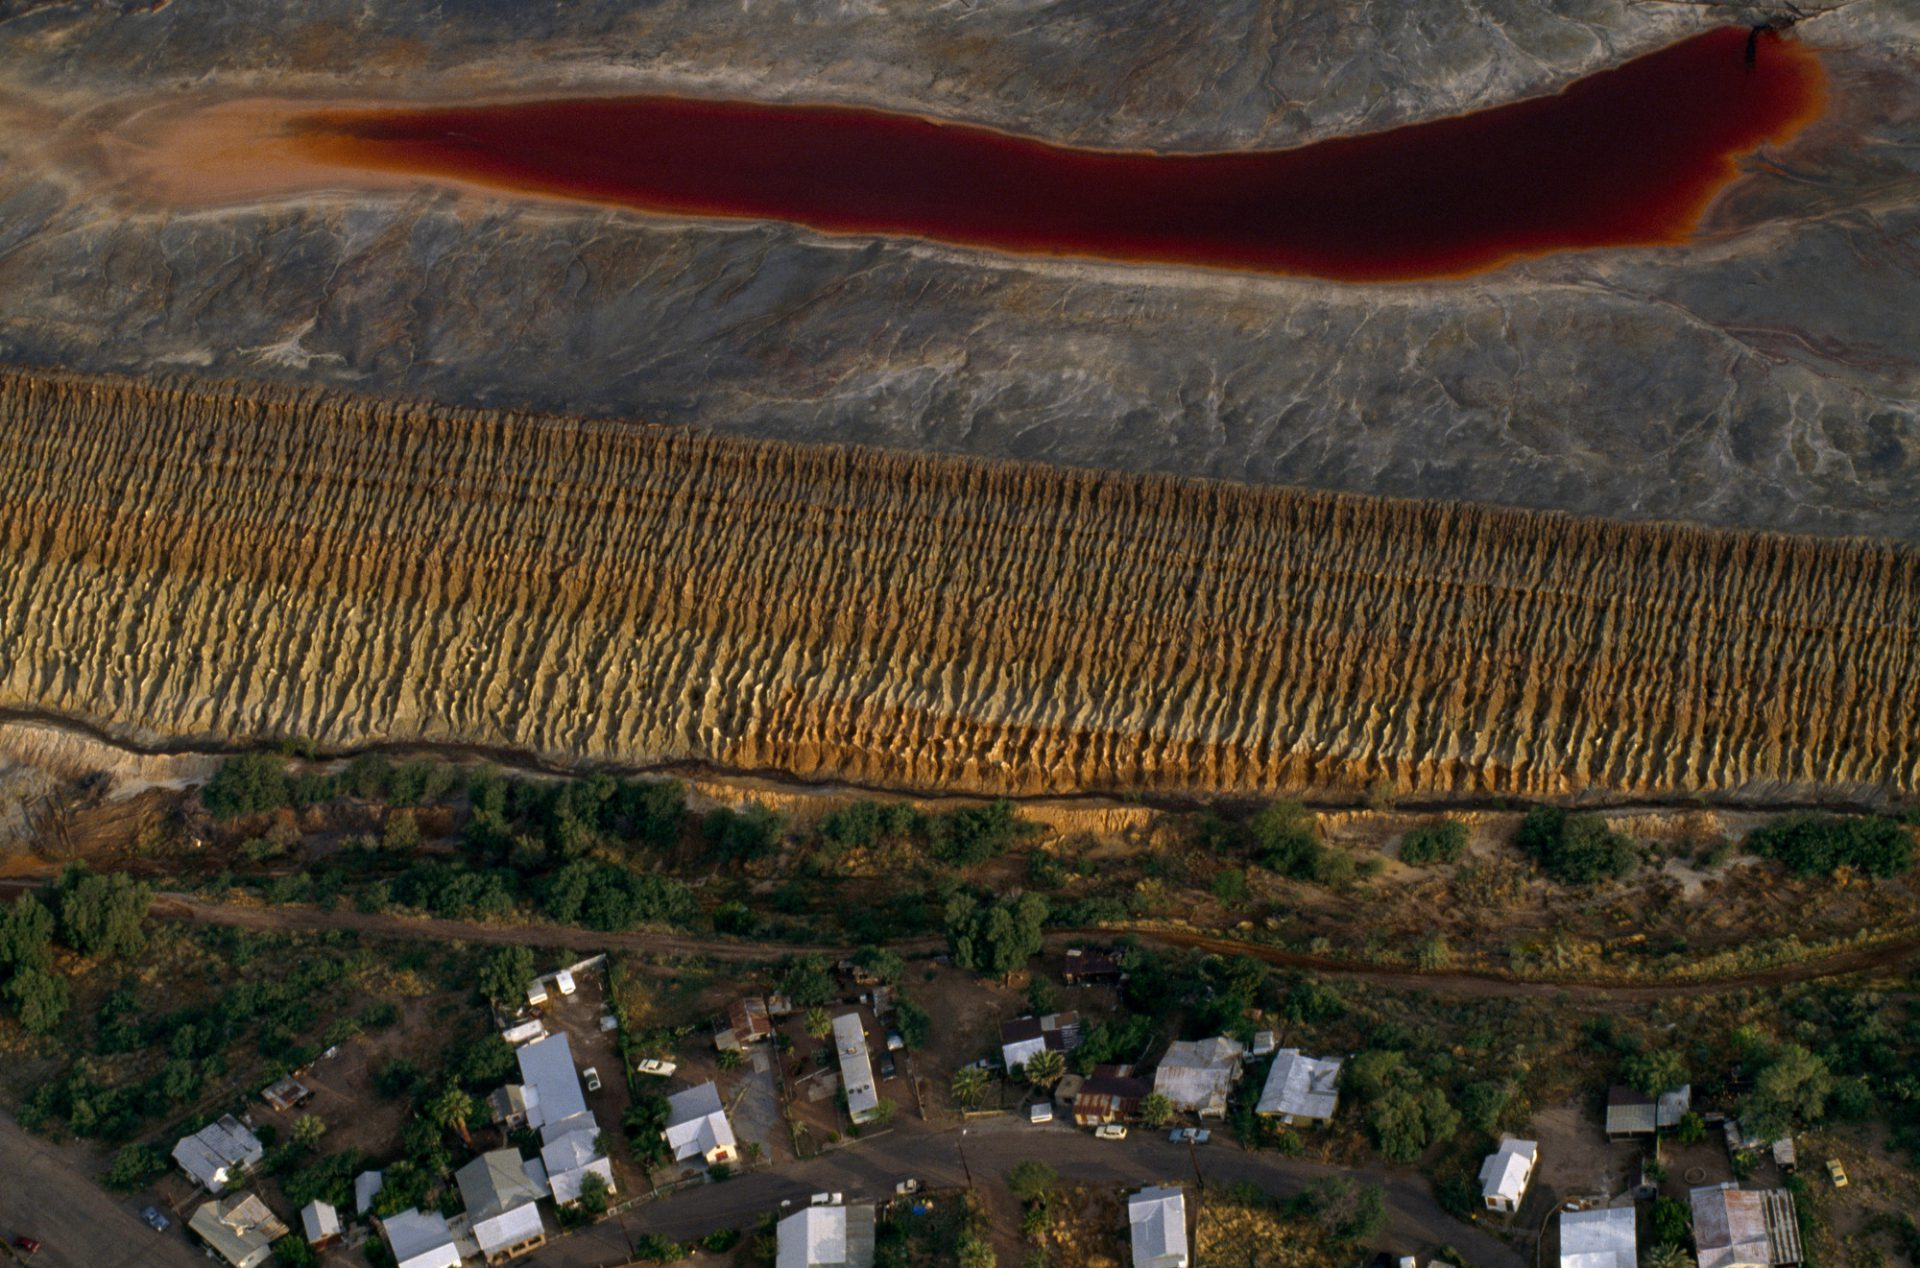 Photo: A copper-tailings impoundment next to a housing development in Arizona threatens leeching of chemicals into groundwater as seen in the sulfide-tinged pool of rainwater.